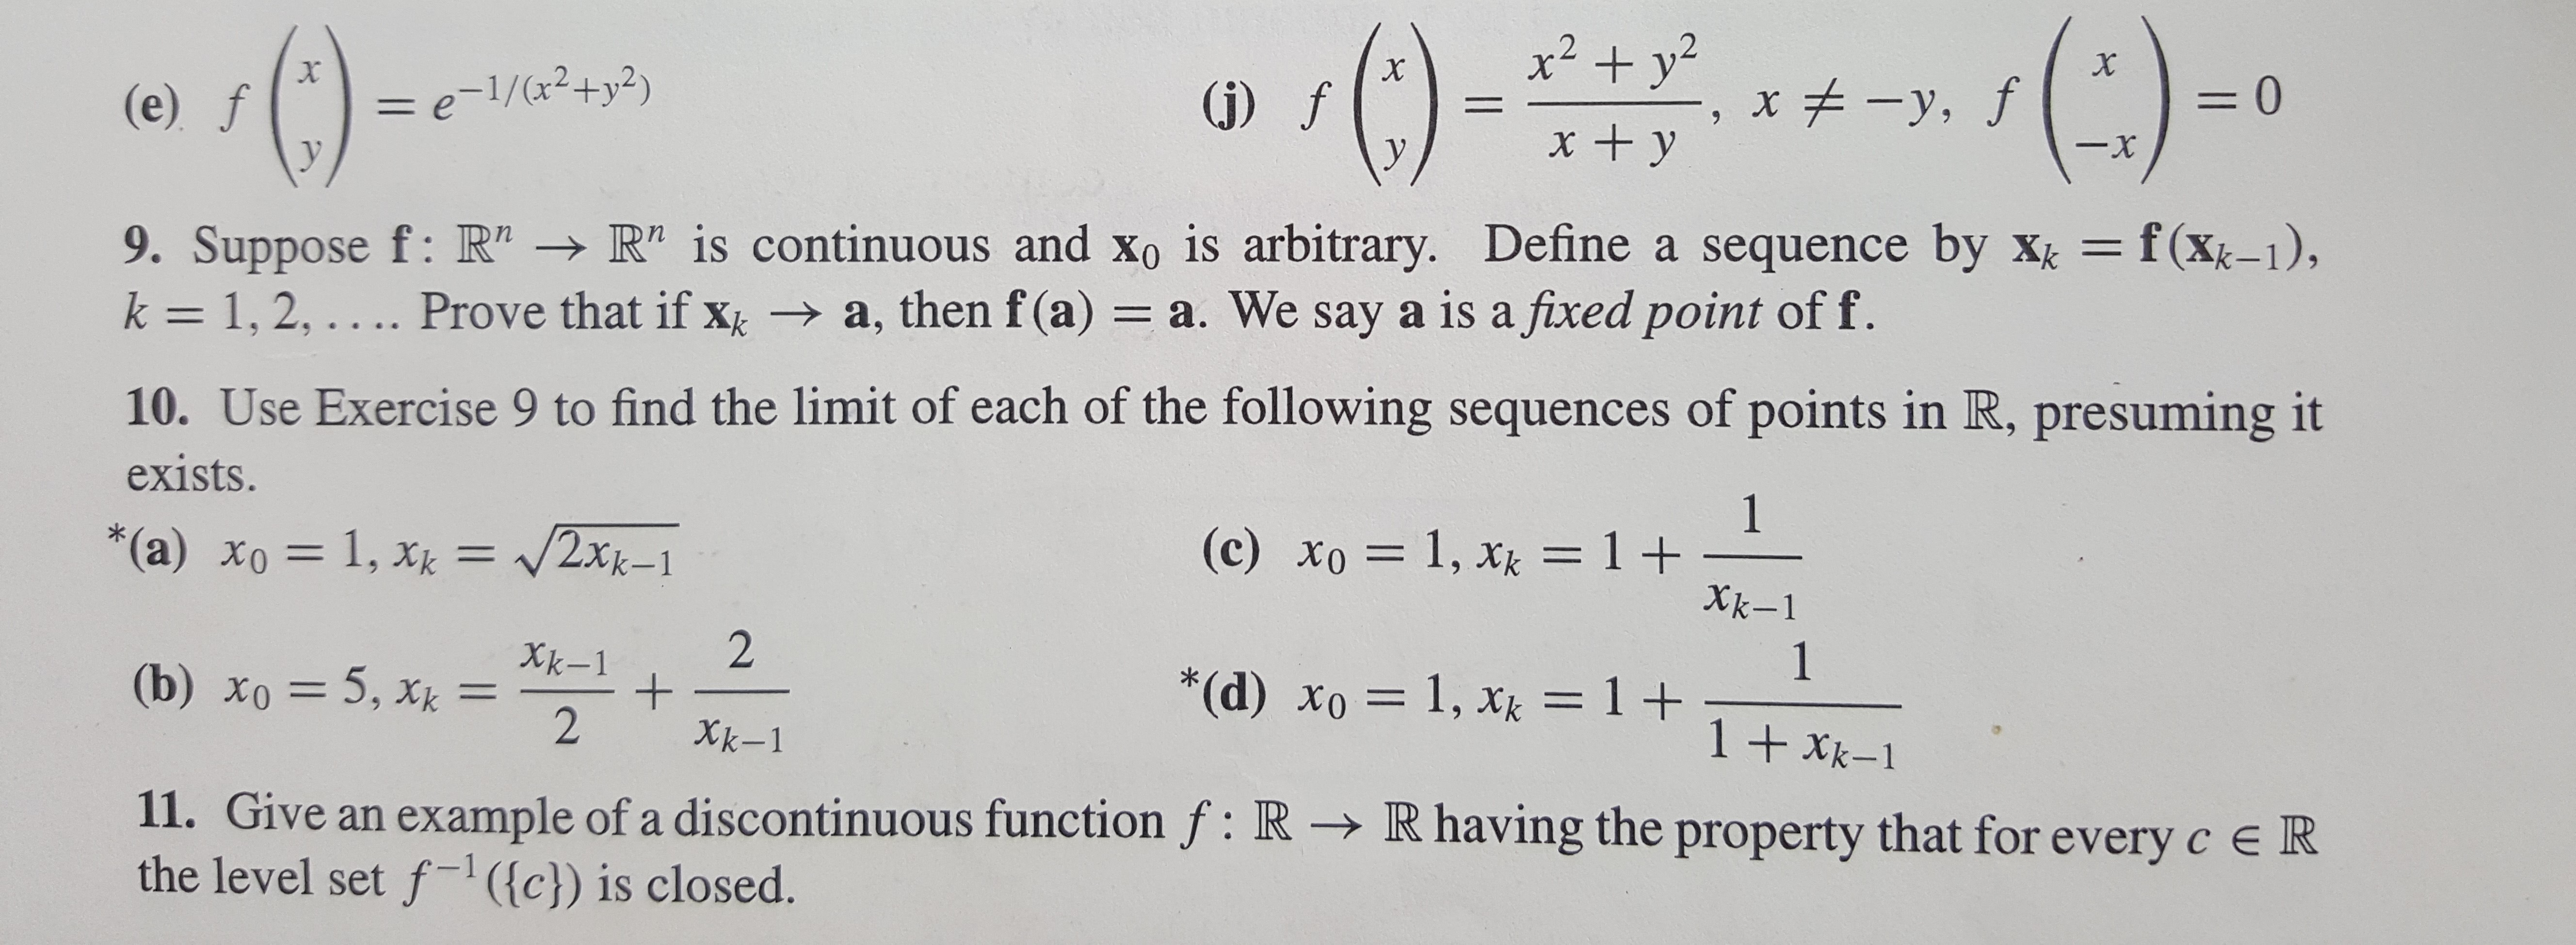 """x2+yx , J X = e-1/(2+y2) =0 x-,f (e) f (j)f xy -x y 9. Suppose f: R"""" R"""" is continuous and Xo is arbitrary. Define a sequence by X k = 1, 2, .. .. Prove that if x a, then f (a) a. We say a is a fixed point of f. = f(xk-1), 10. Use Exercise 9 to find the limit of each of the following sequences of points in R, presuming it exists. 1 (c) xo 1, xk = 1 + Xk-1 V2Xk-1 *(a) xo= 1, xk 2 1 *(d) xo 1, xk = 1 T 1 +Xk-1 Xk-1 + 2 (b) xo 5, x = 1 Xk-1 11. Give an example of a discontinuous function f: R - R having the property that for every c e R the level set f({c}) is closed."""